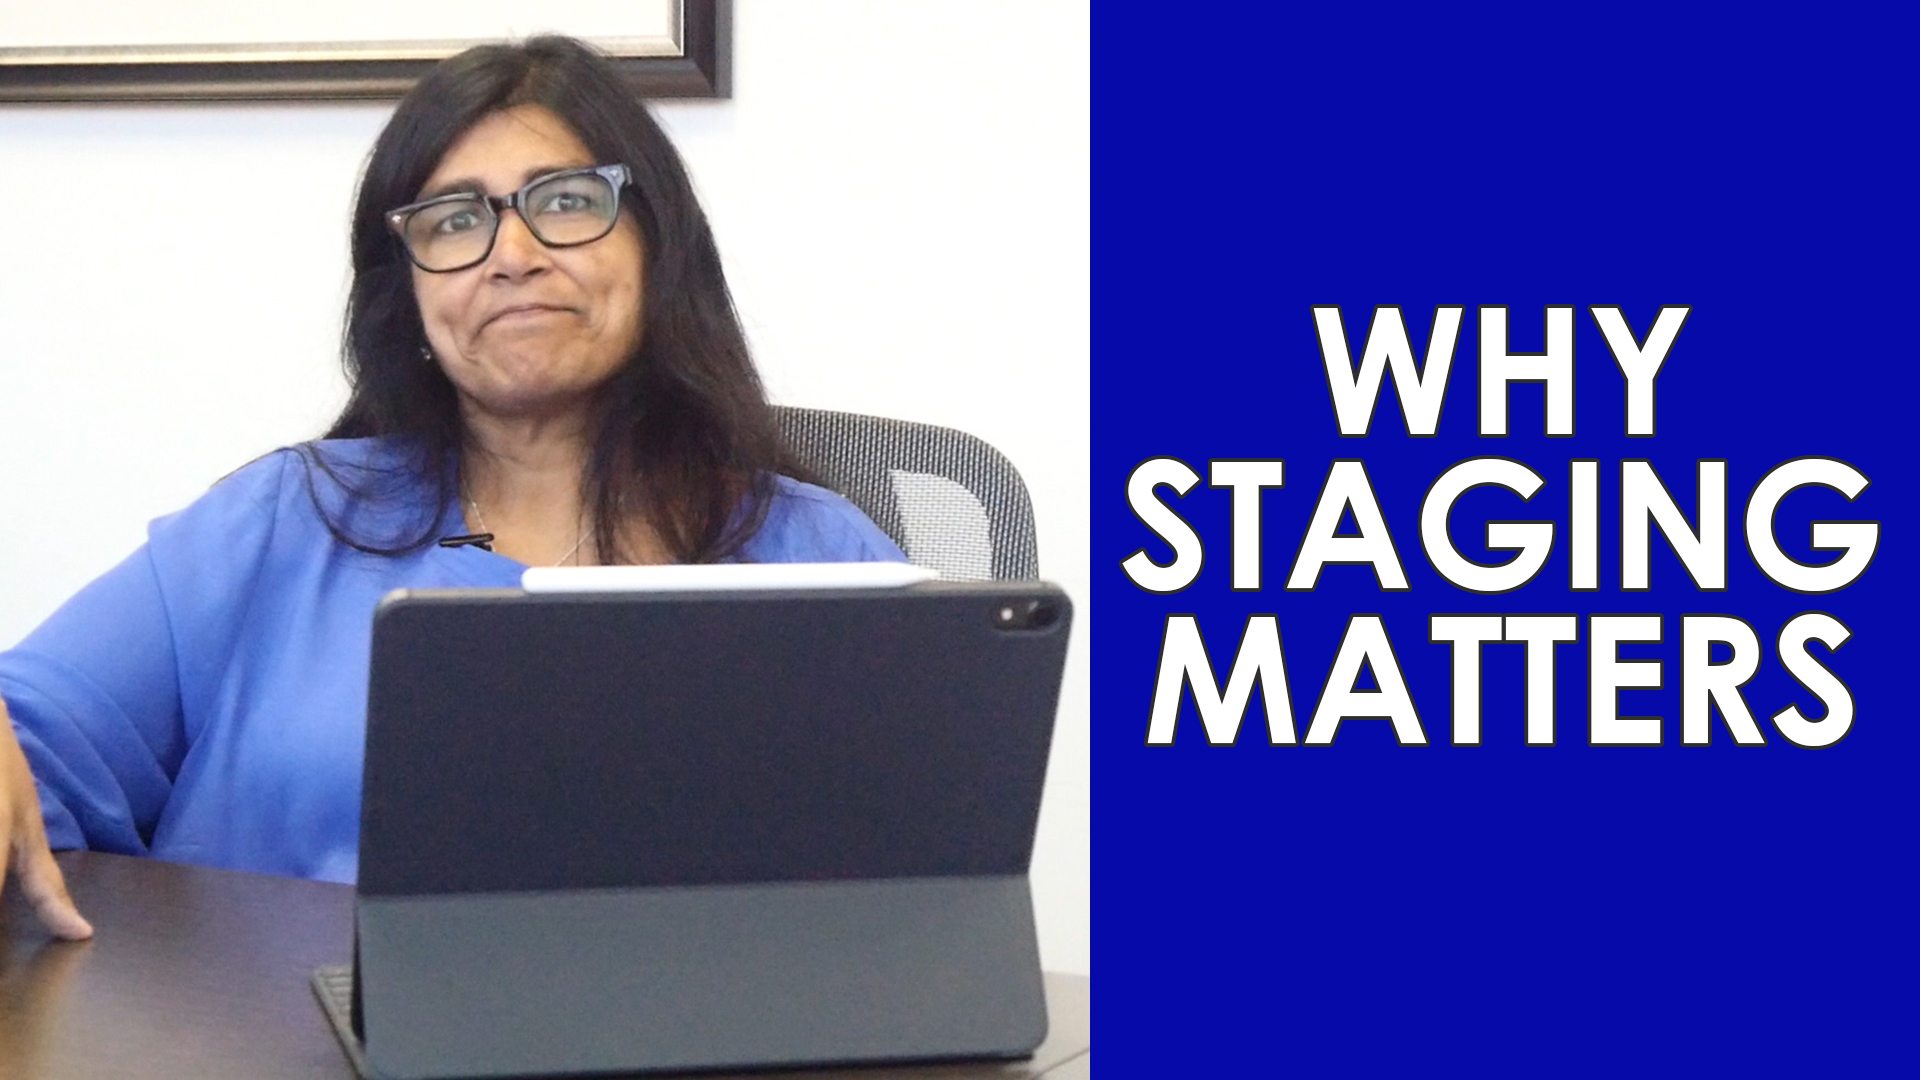 The Importance of Staging